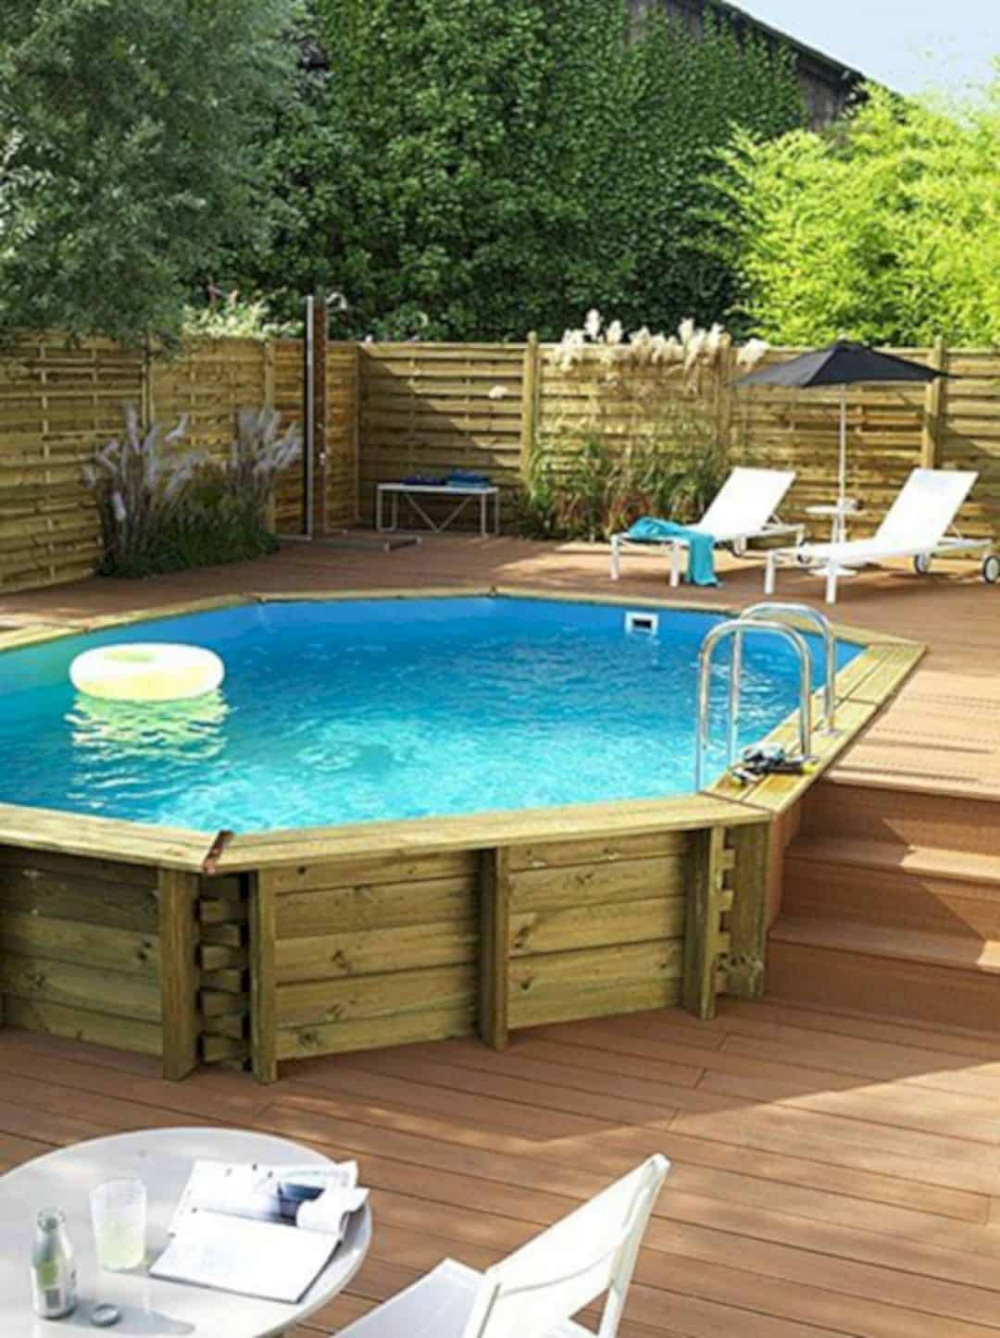 Coolest Small Pool Ideas With 9 Basic Preparation Tips Futurist Architecture Pool Deck Plans Swimming Pool Decks Above Ground Pool Landscaping